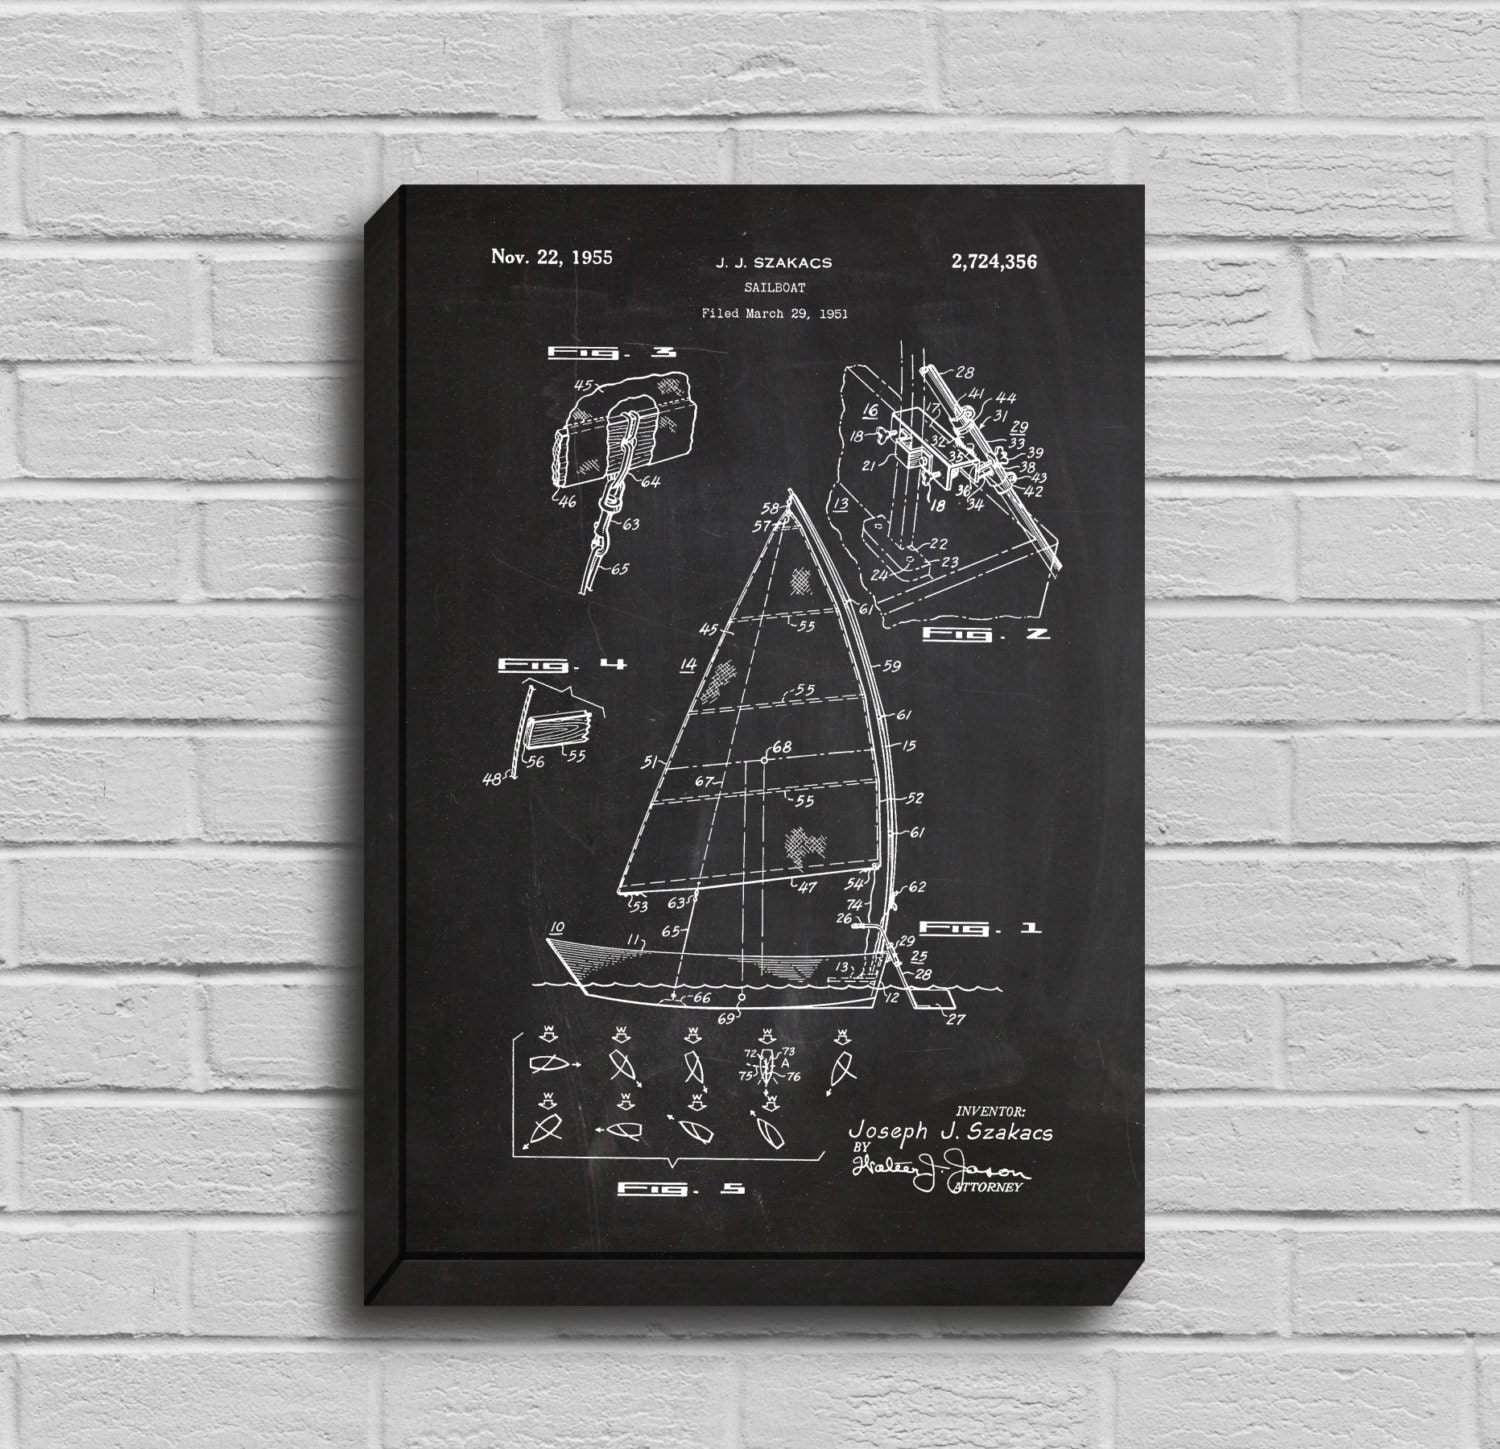 Canvas sailboat patent sailboat poster sailboat blueprint canvas sailboat patent sailboat poster sailboat blueprint sailboat print sailboat art sailboat decor nautical decor boat art malvernweather Gallery